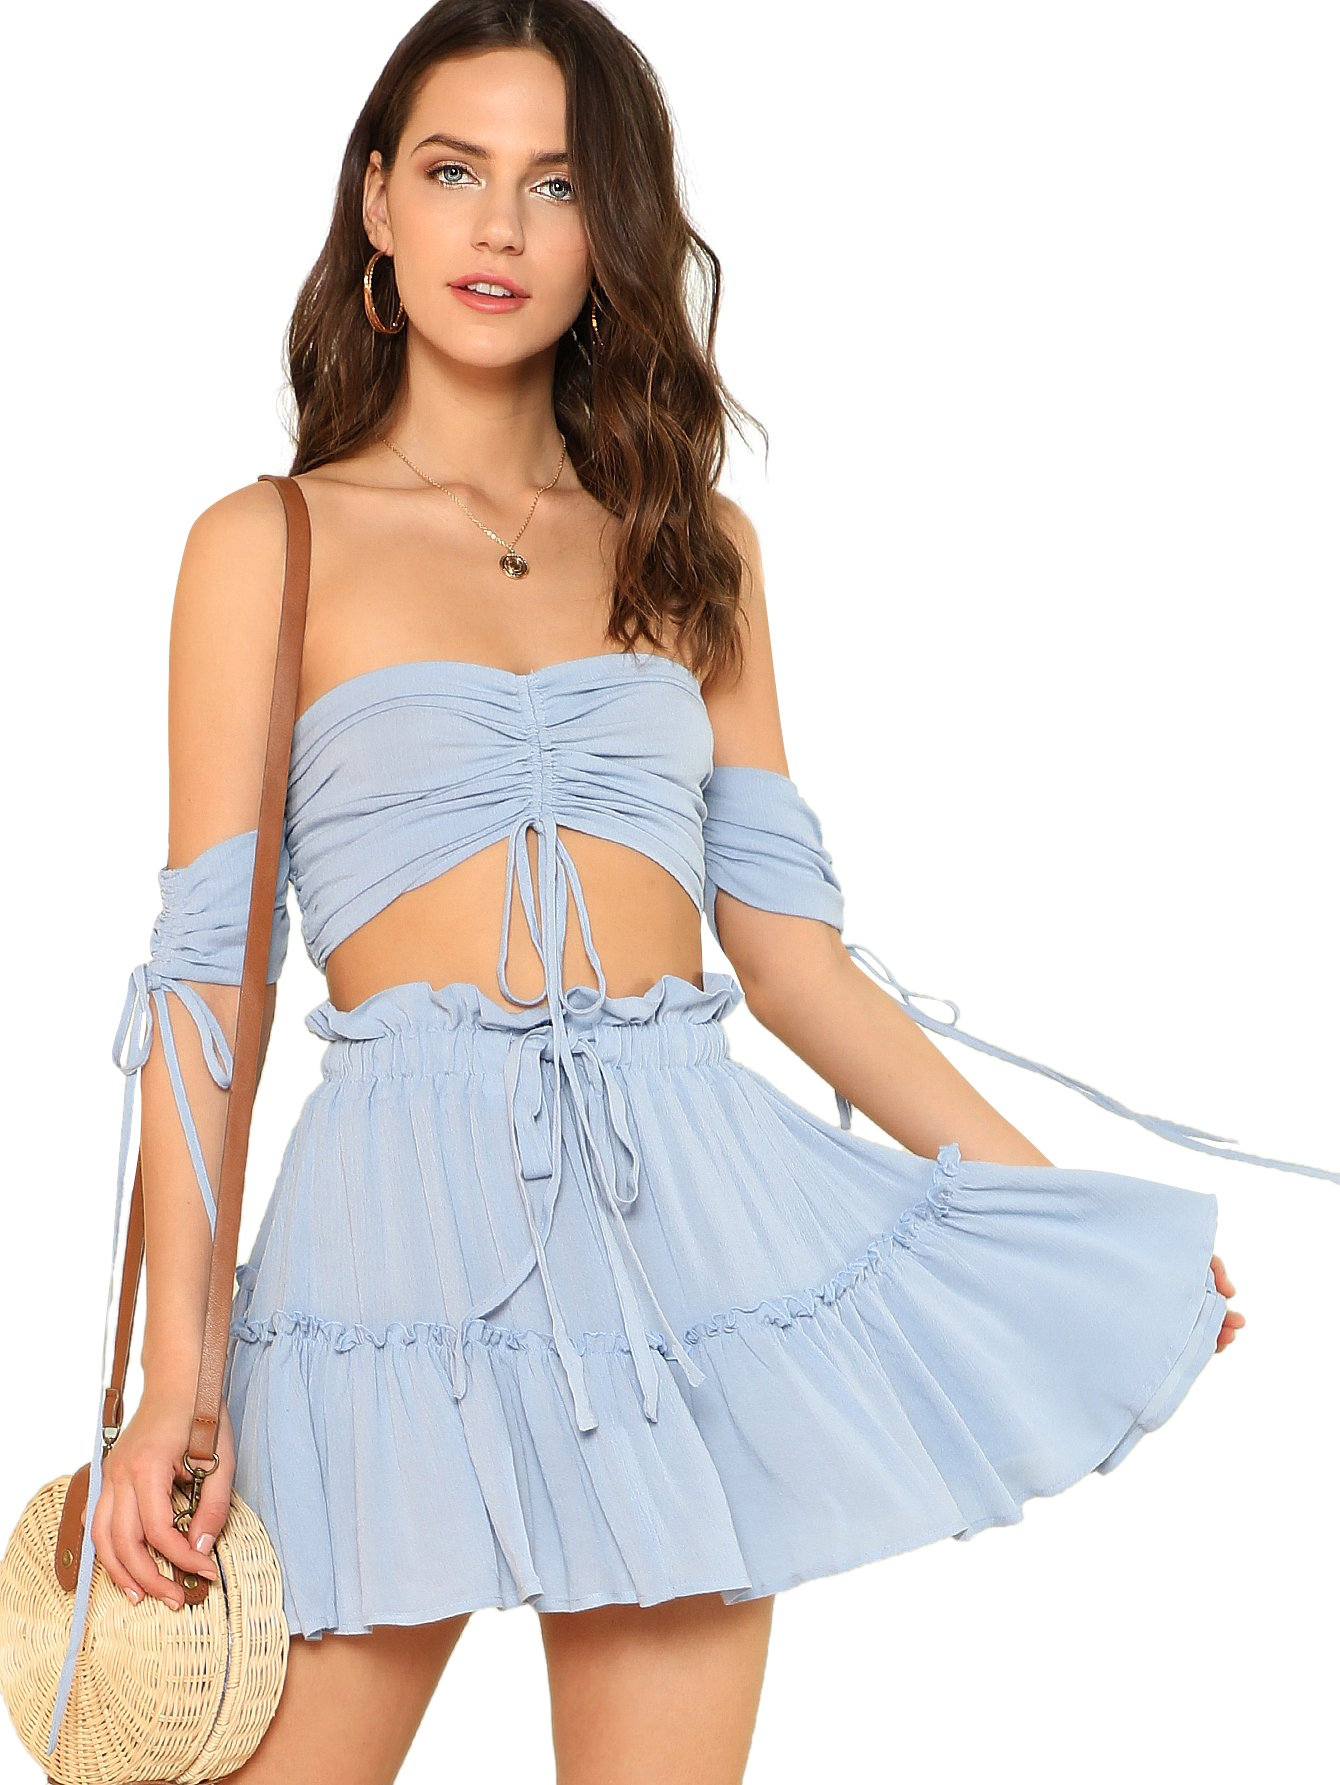 Floerns Womens 2 Piece Outfit Spaghetti Strap Cami Crop Top and Skirt Set